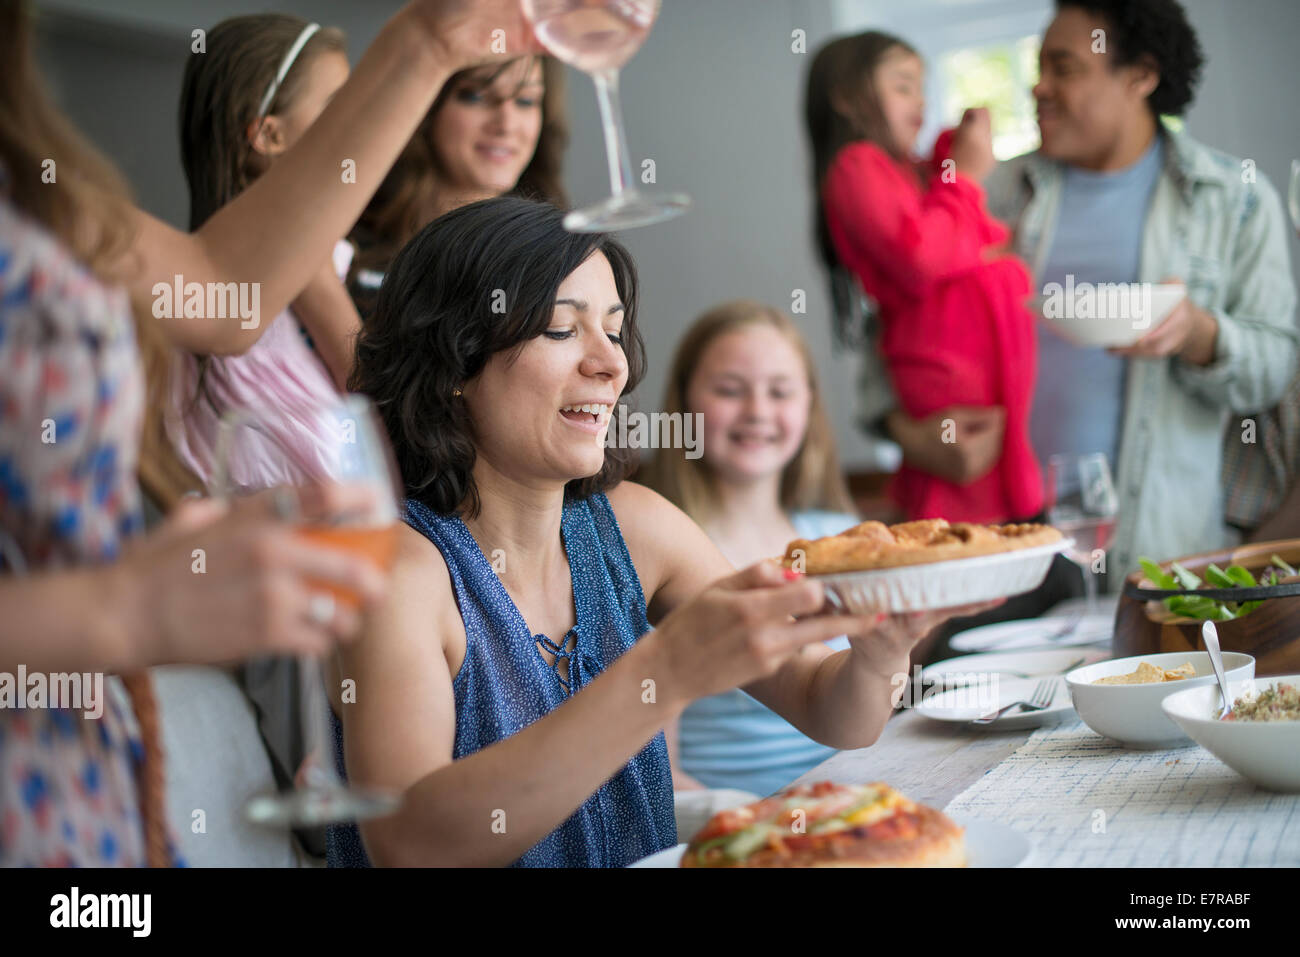 A family gathering for a meal. Adults and children around a table. - Stock Image